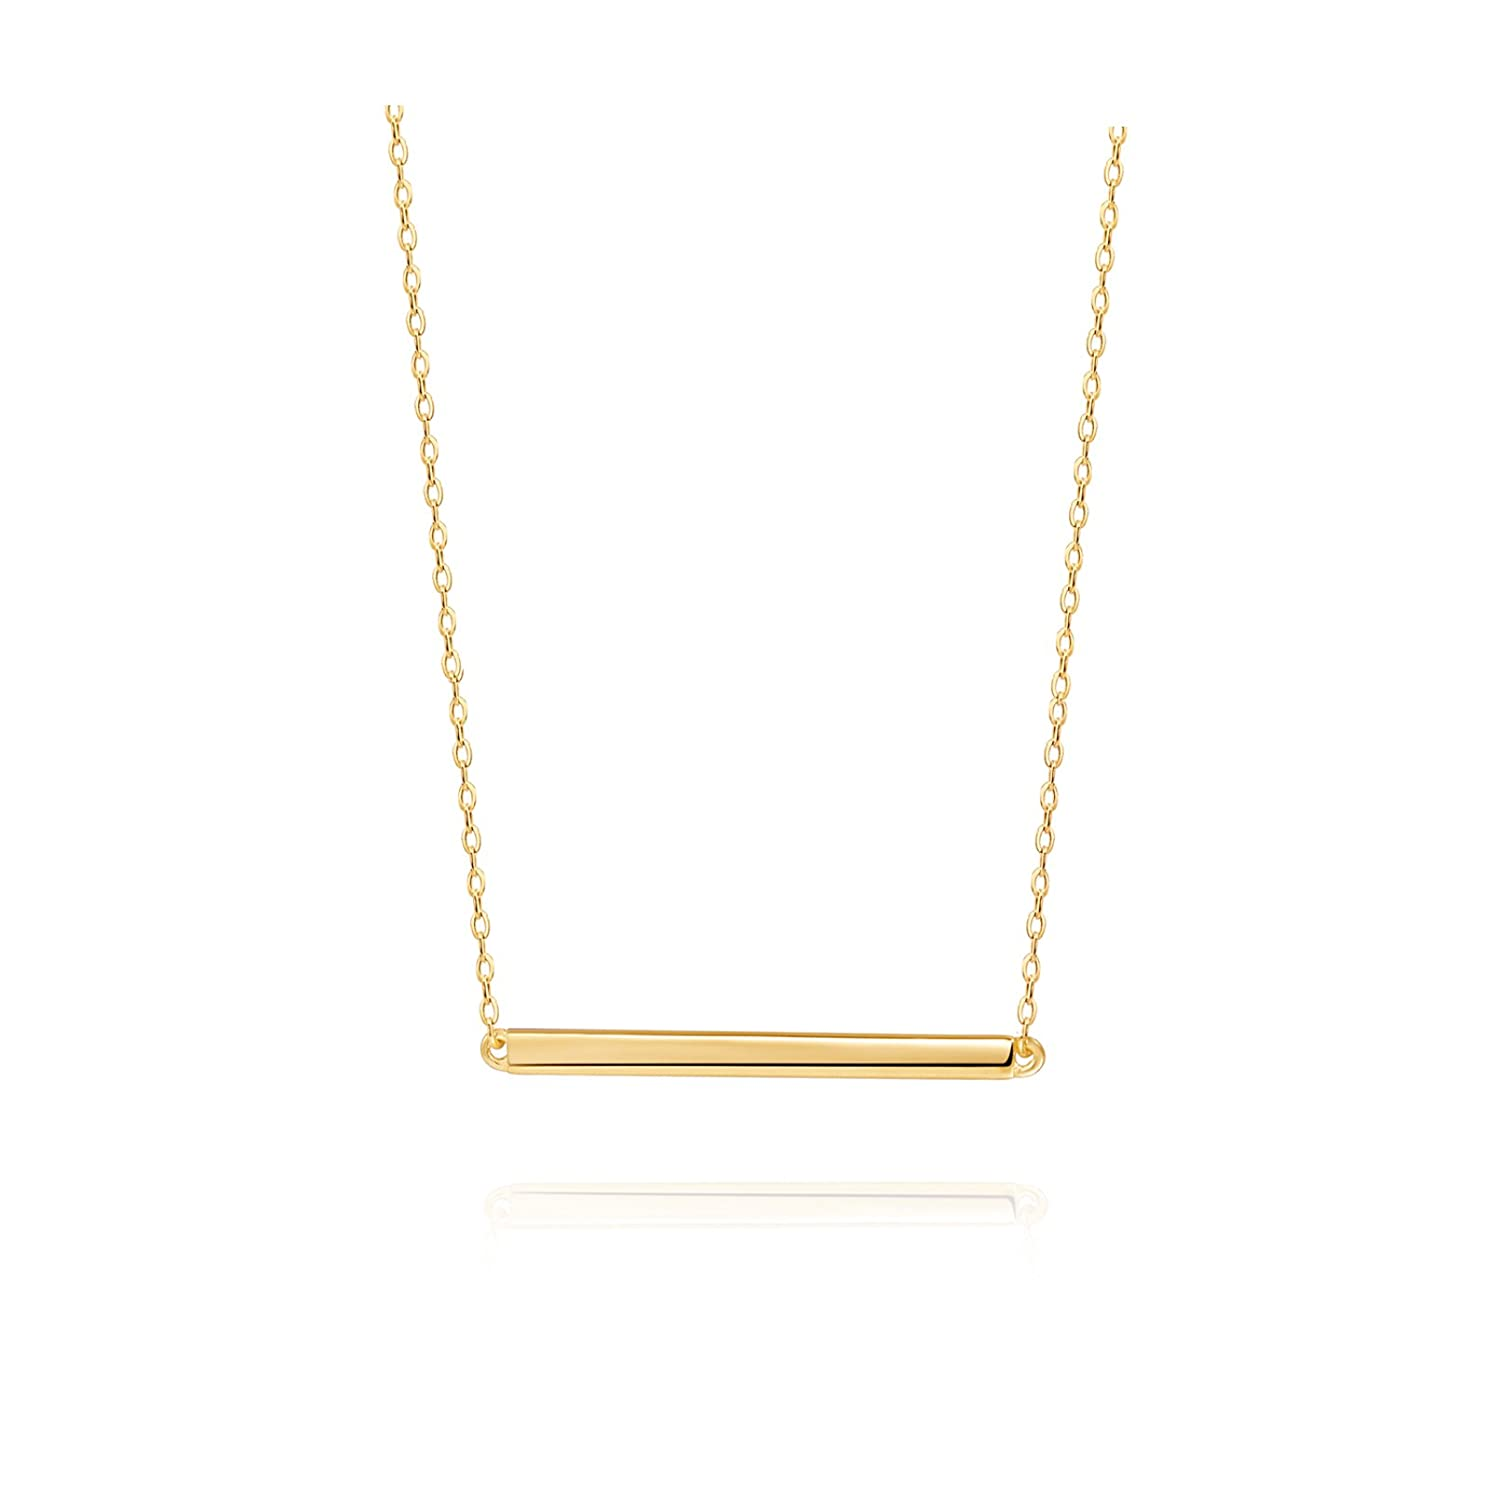 S.Leaf Bar Necklace Sterling Silver Minimalism Line Necklace Horizontal Bar Necklace CO-N013-G